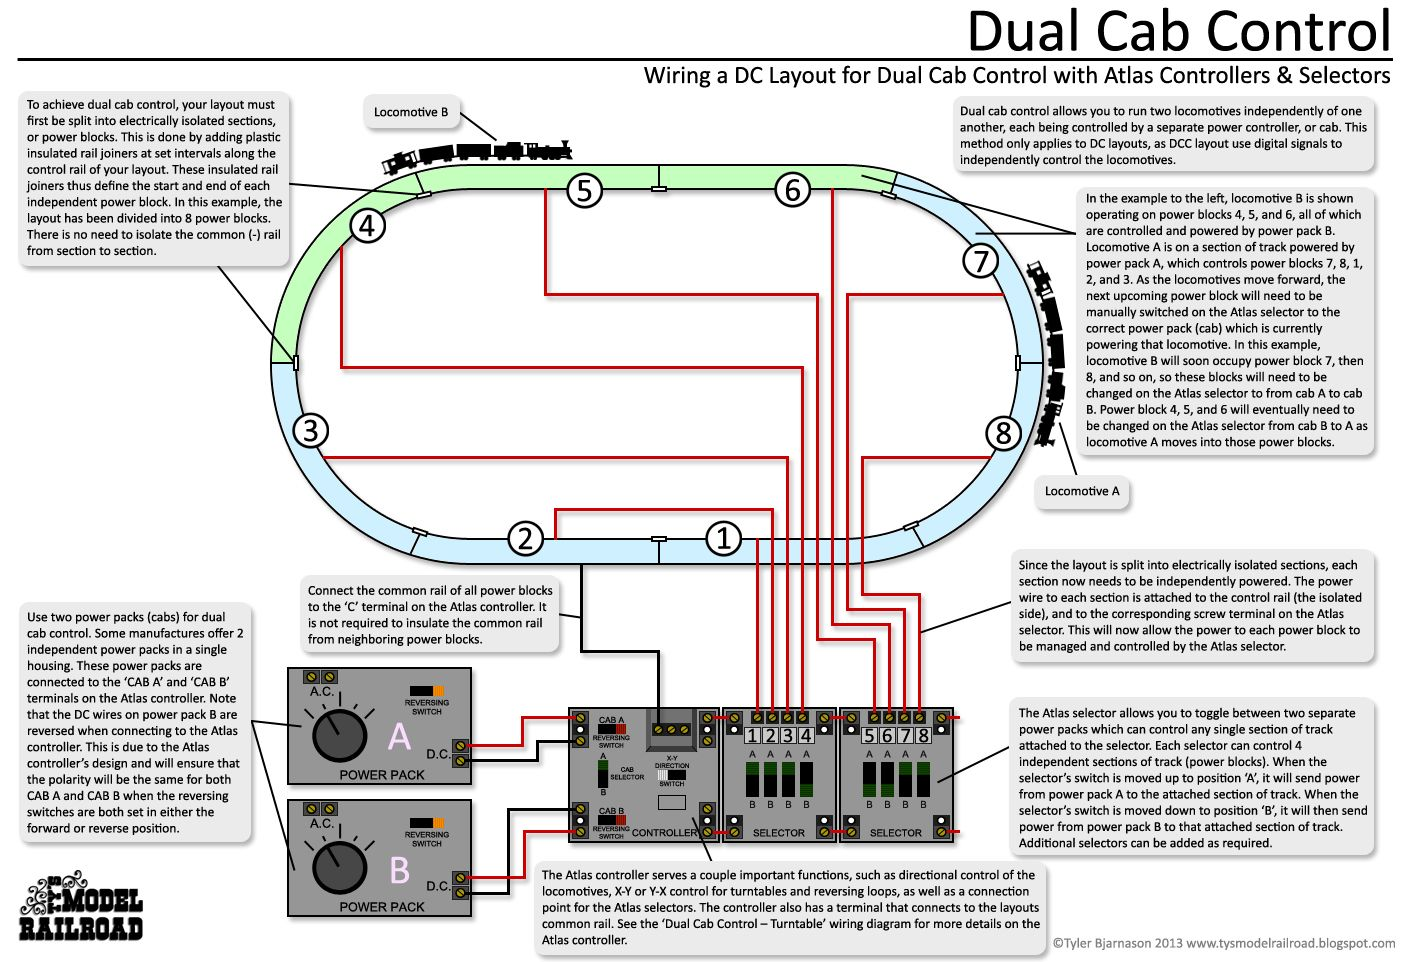 Pleasant Plans For Train Track Wiring Wiring Library Wiring Digital Resources Anistprontobusorg